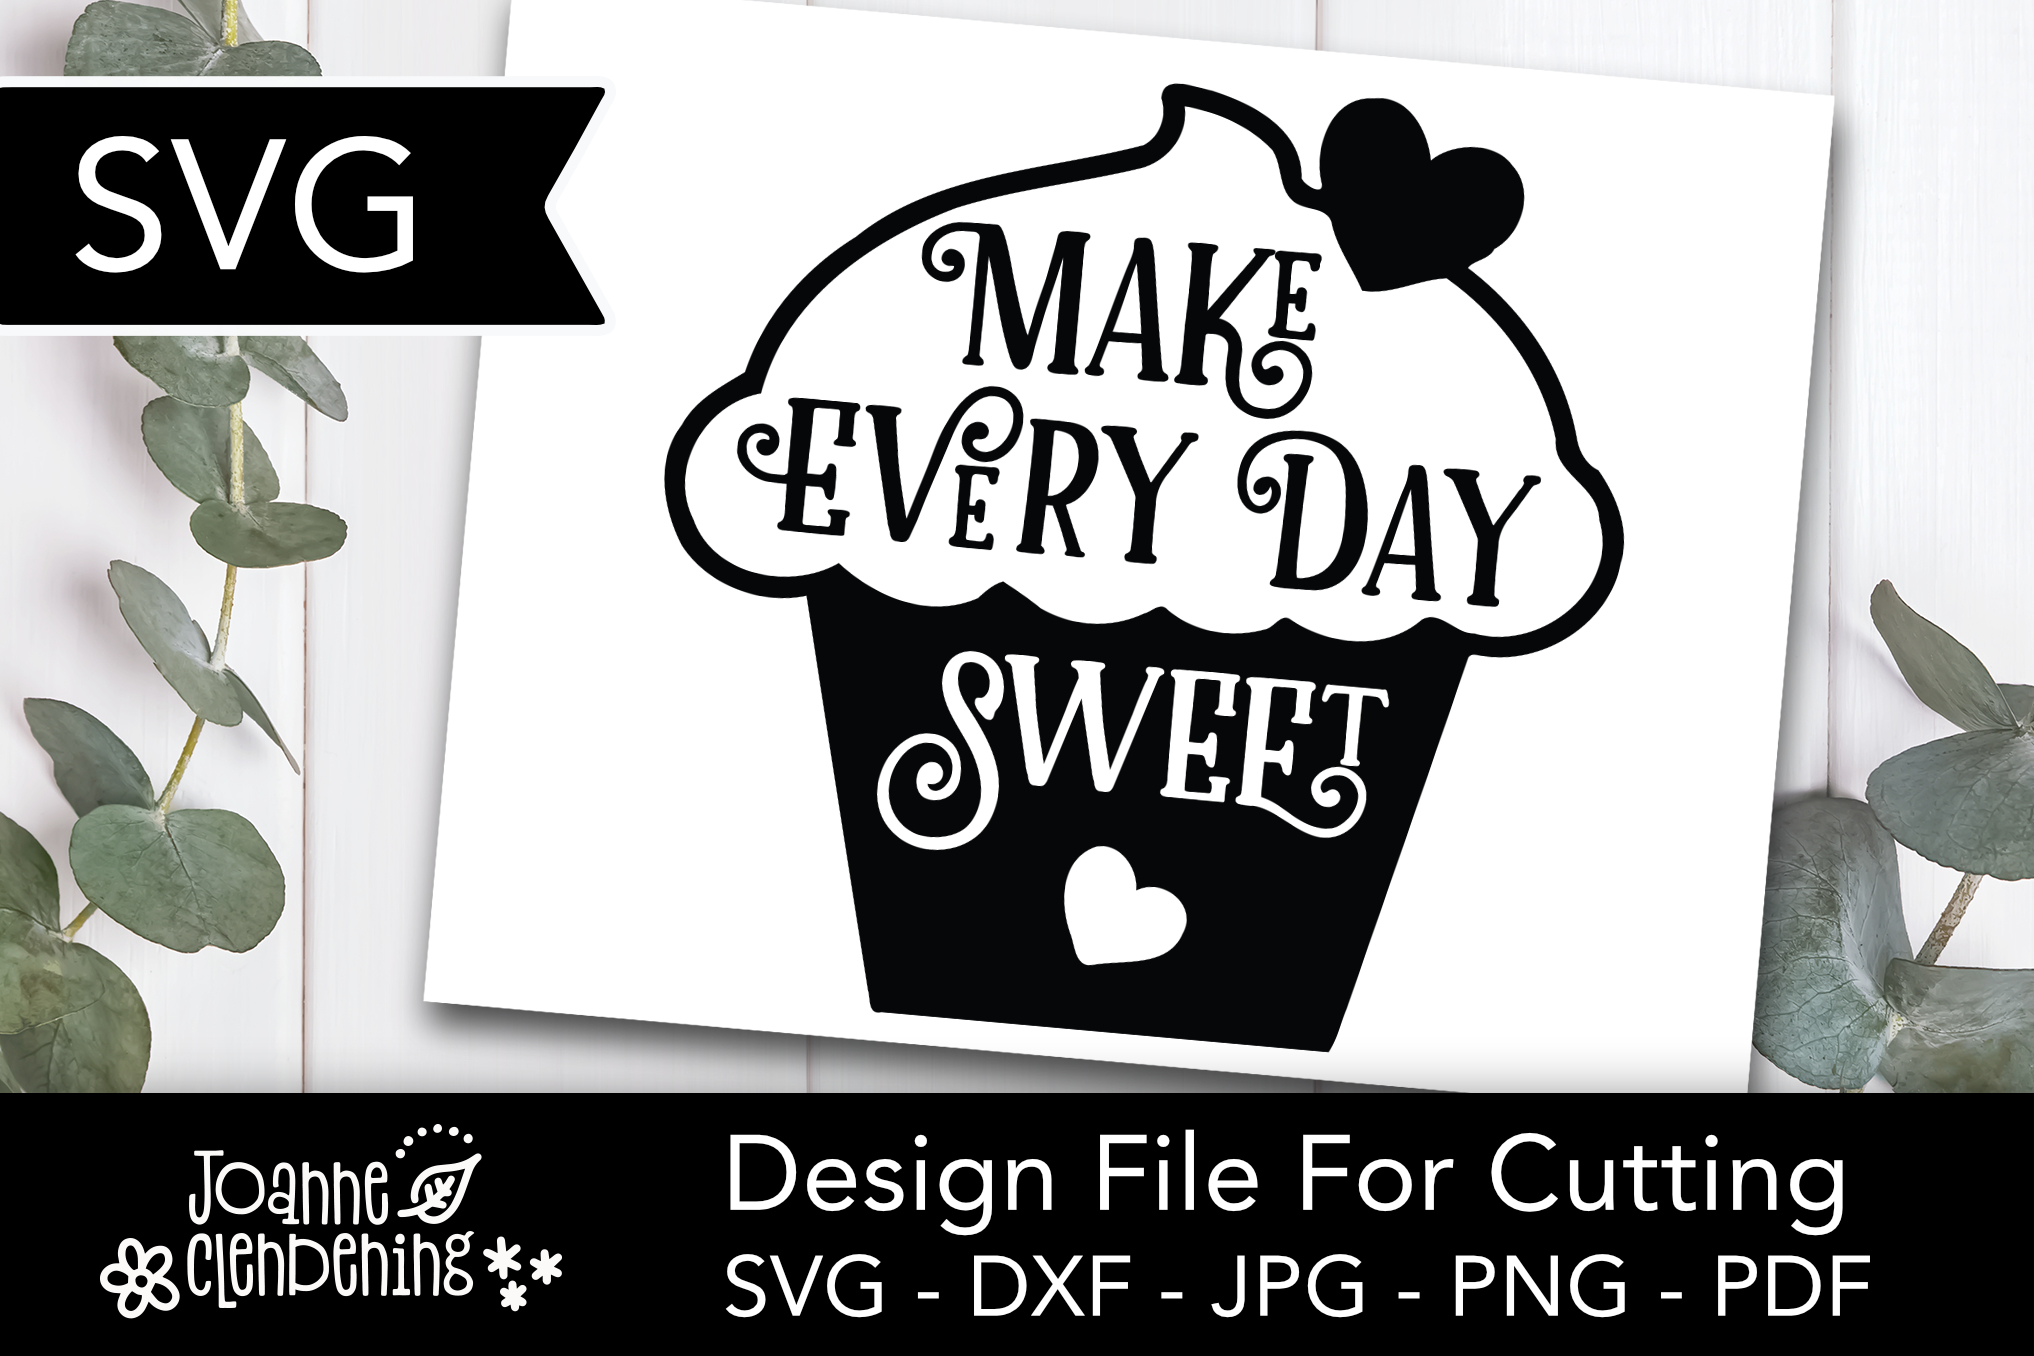 Download Free Make Every Day Sweet Graphic By Joanne Clendening Creative Fabrica for Cricut Explore, Silhouette and other cutting machines.